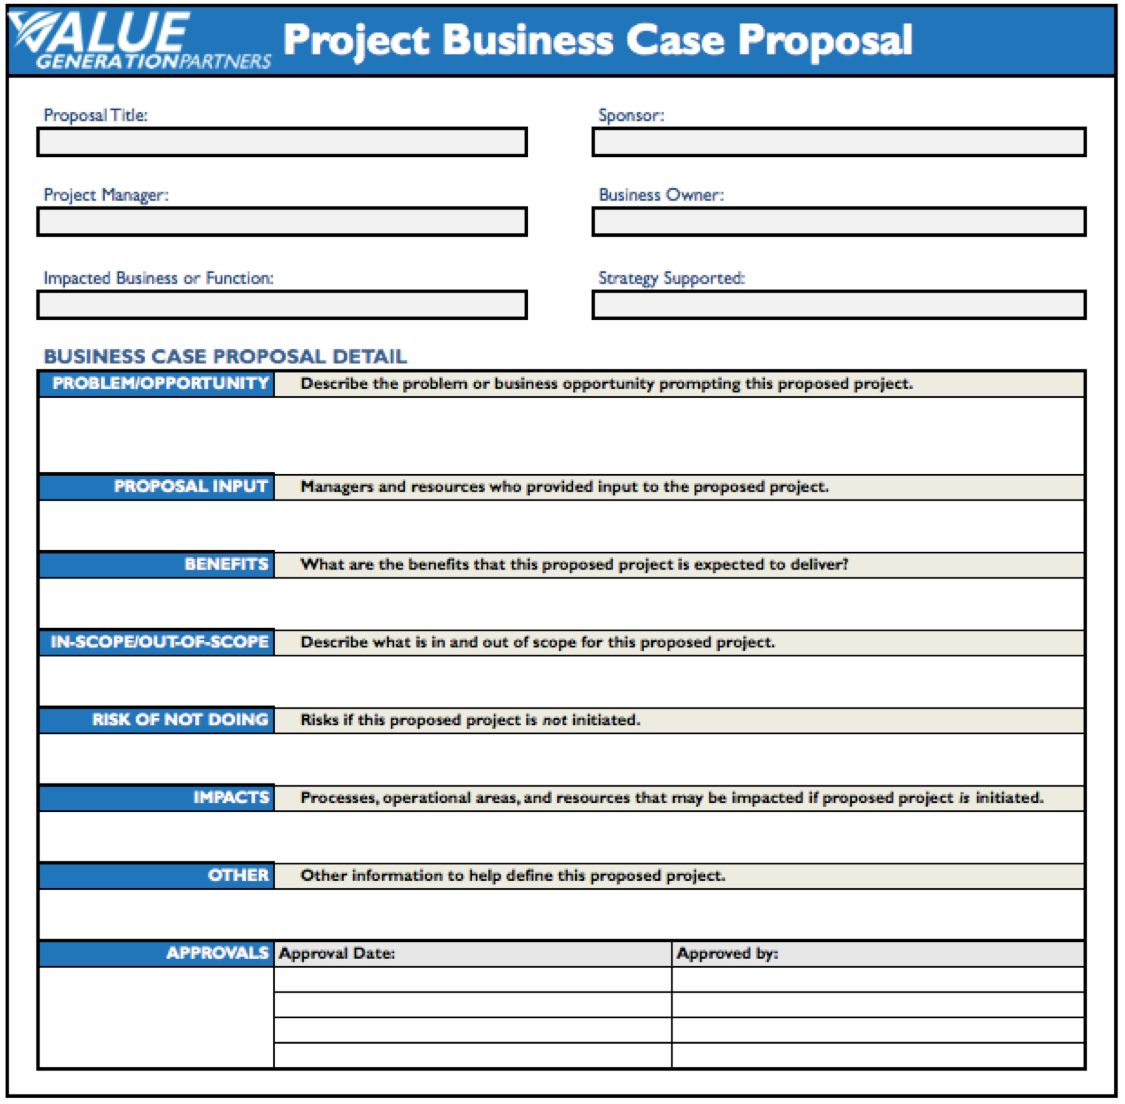 Business Case Template Make It Simple To Do Business With You You